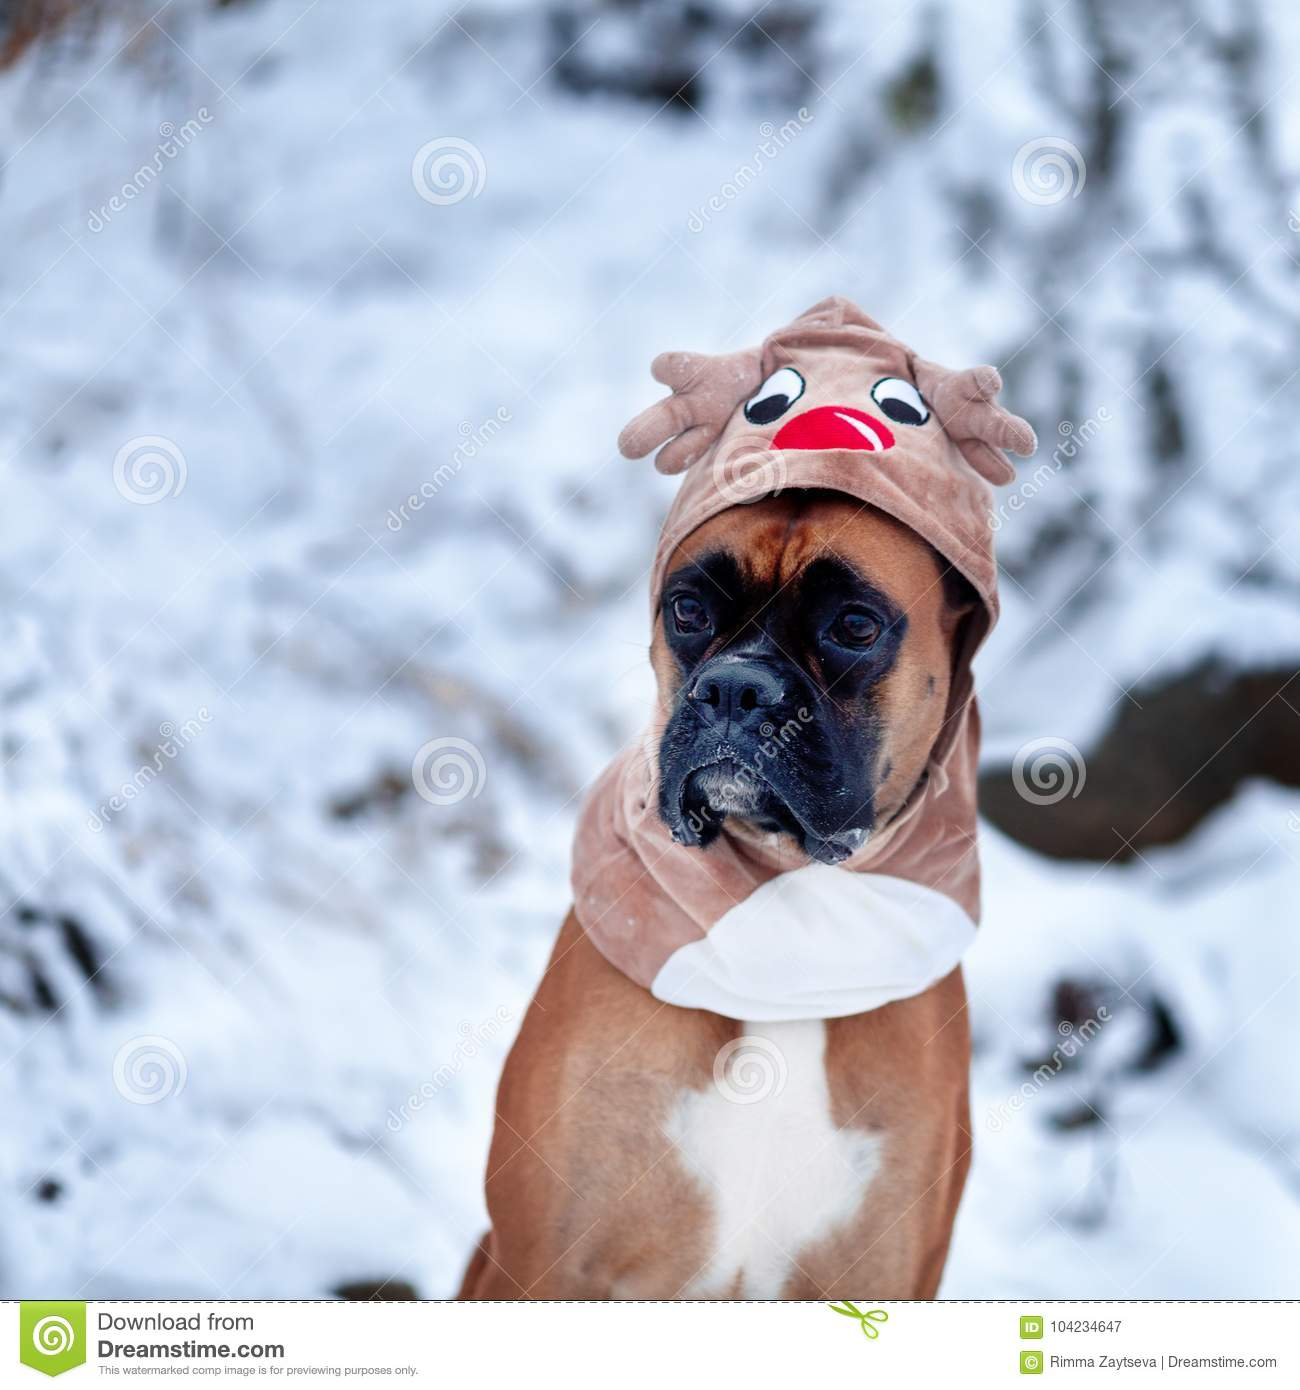 Download comp & Portrait Of Dog In Deer Costume Against Background Of Christmas ...